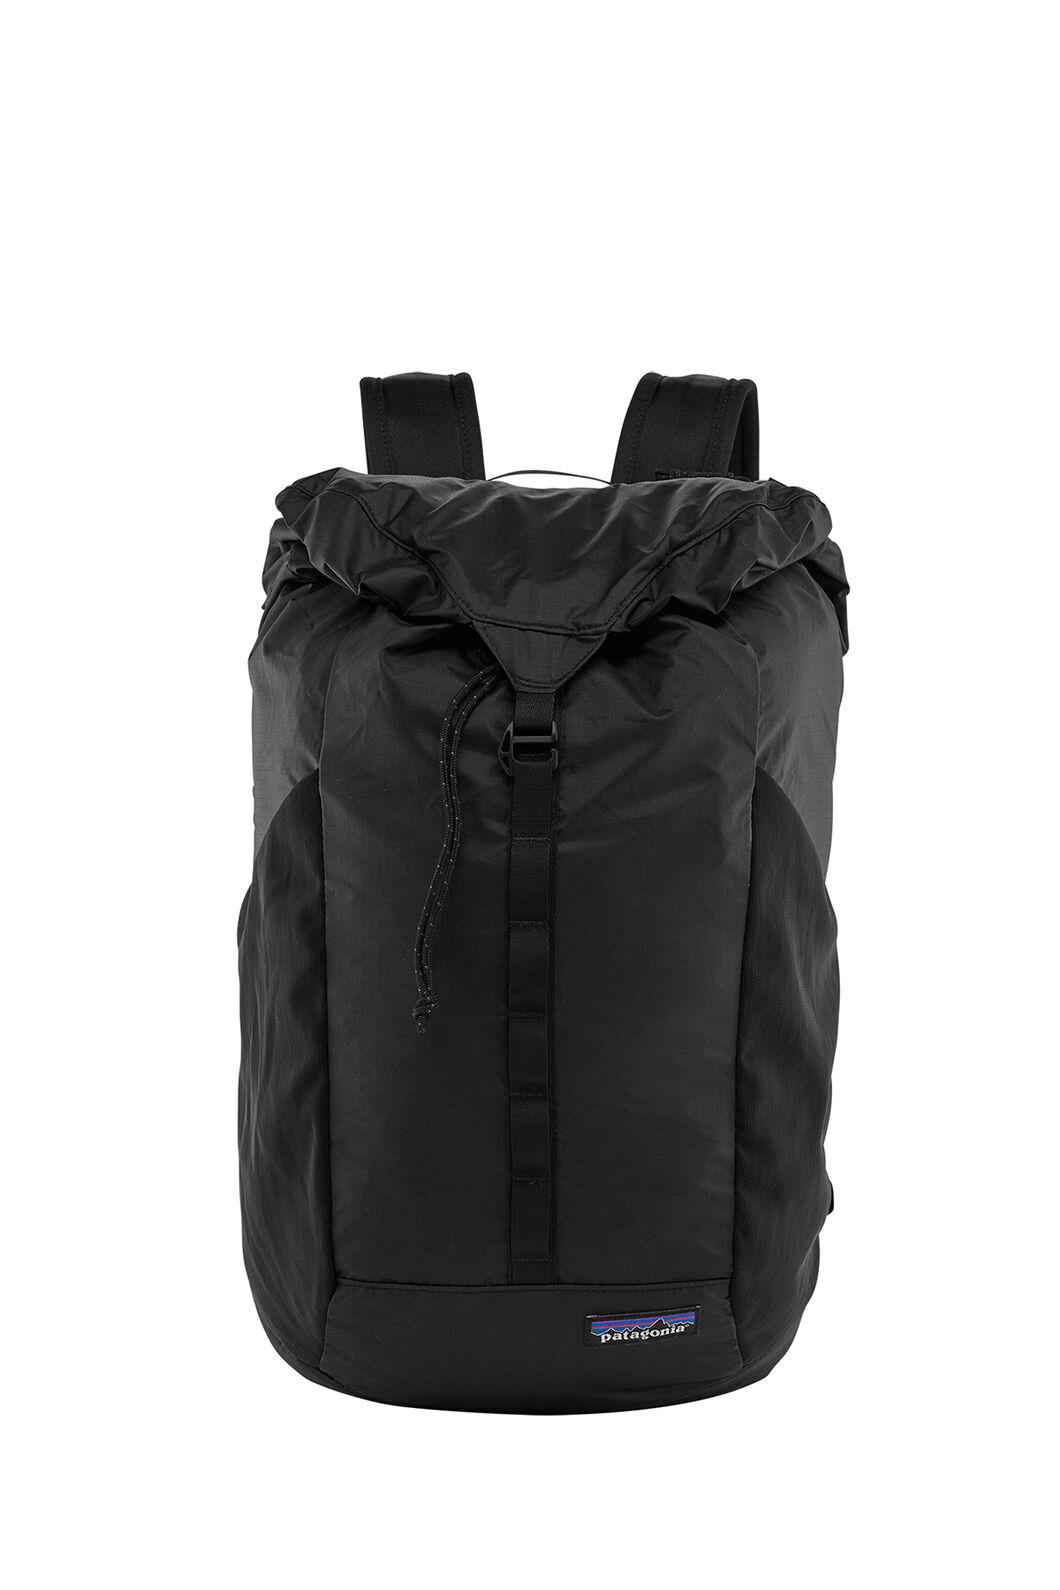 Patagonia Ultralight Black Hole® 20L Pack , Black, hi-res